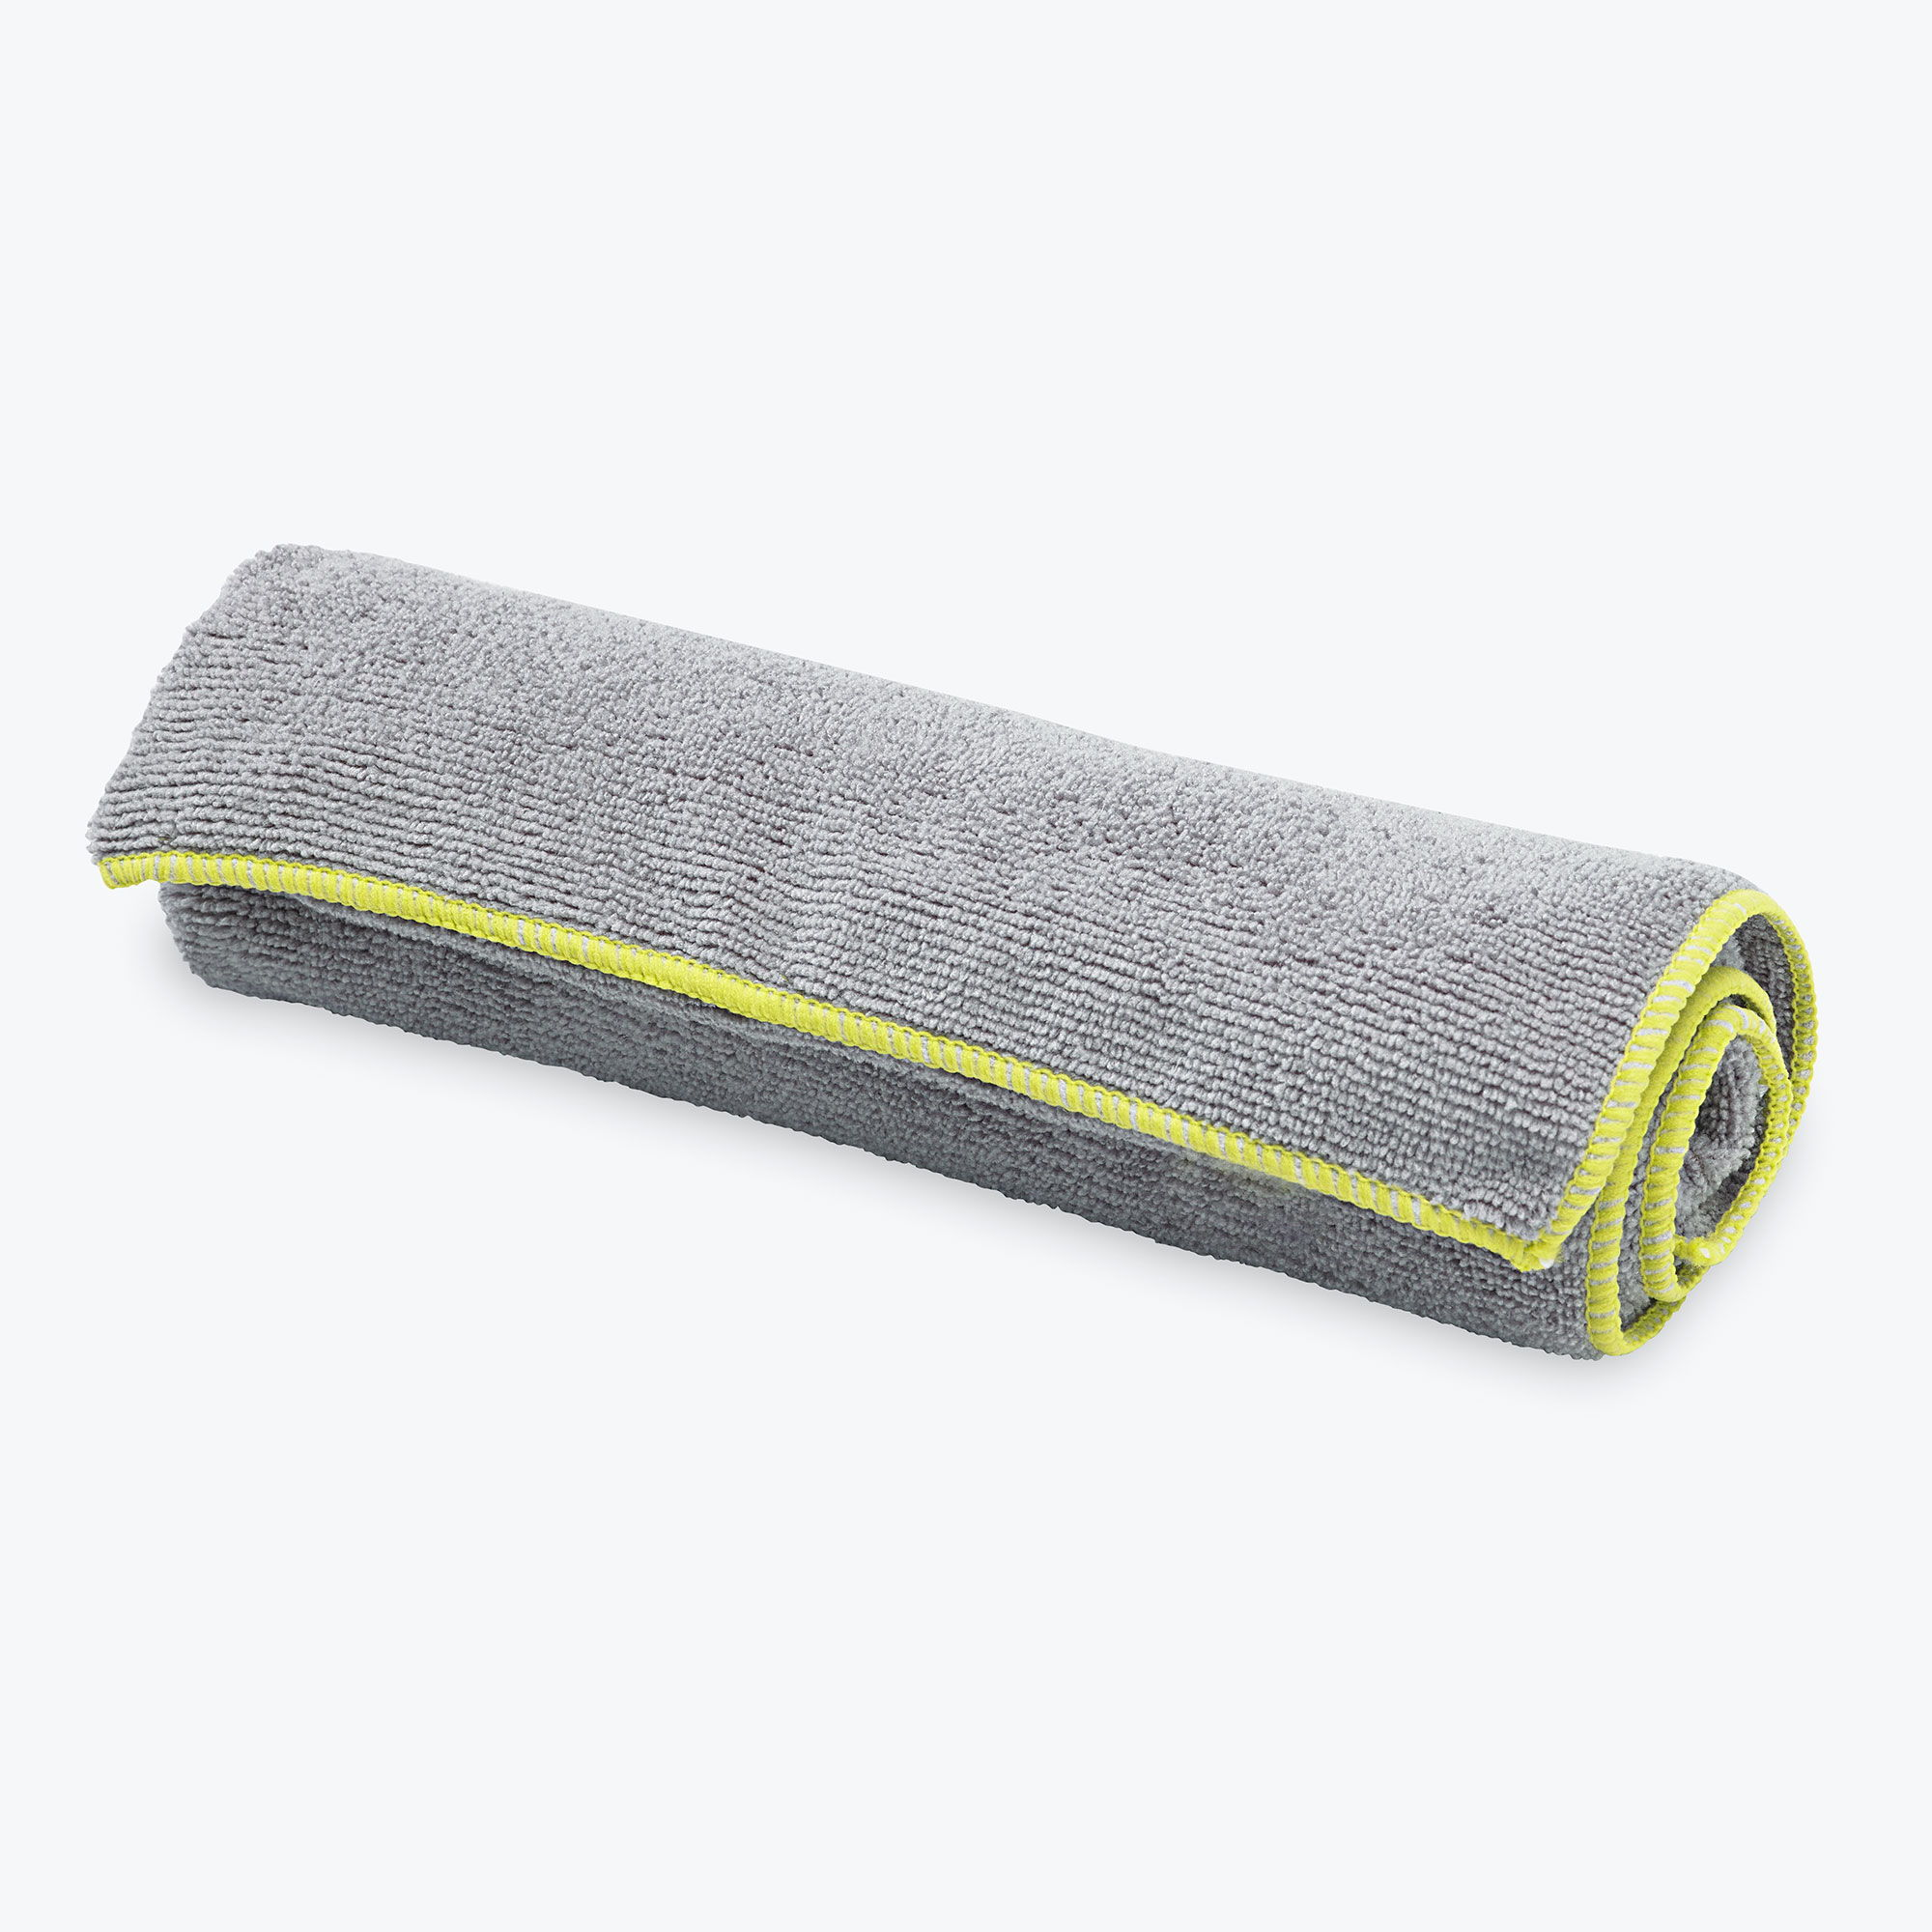 Shop Gaiam Yoga Towels